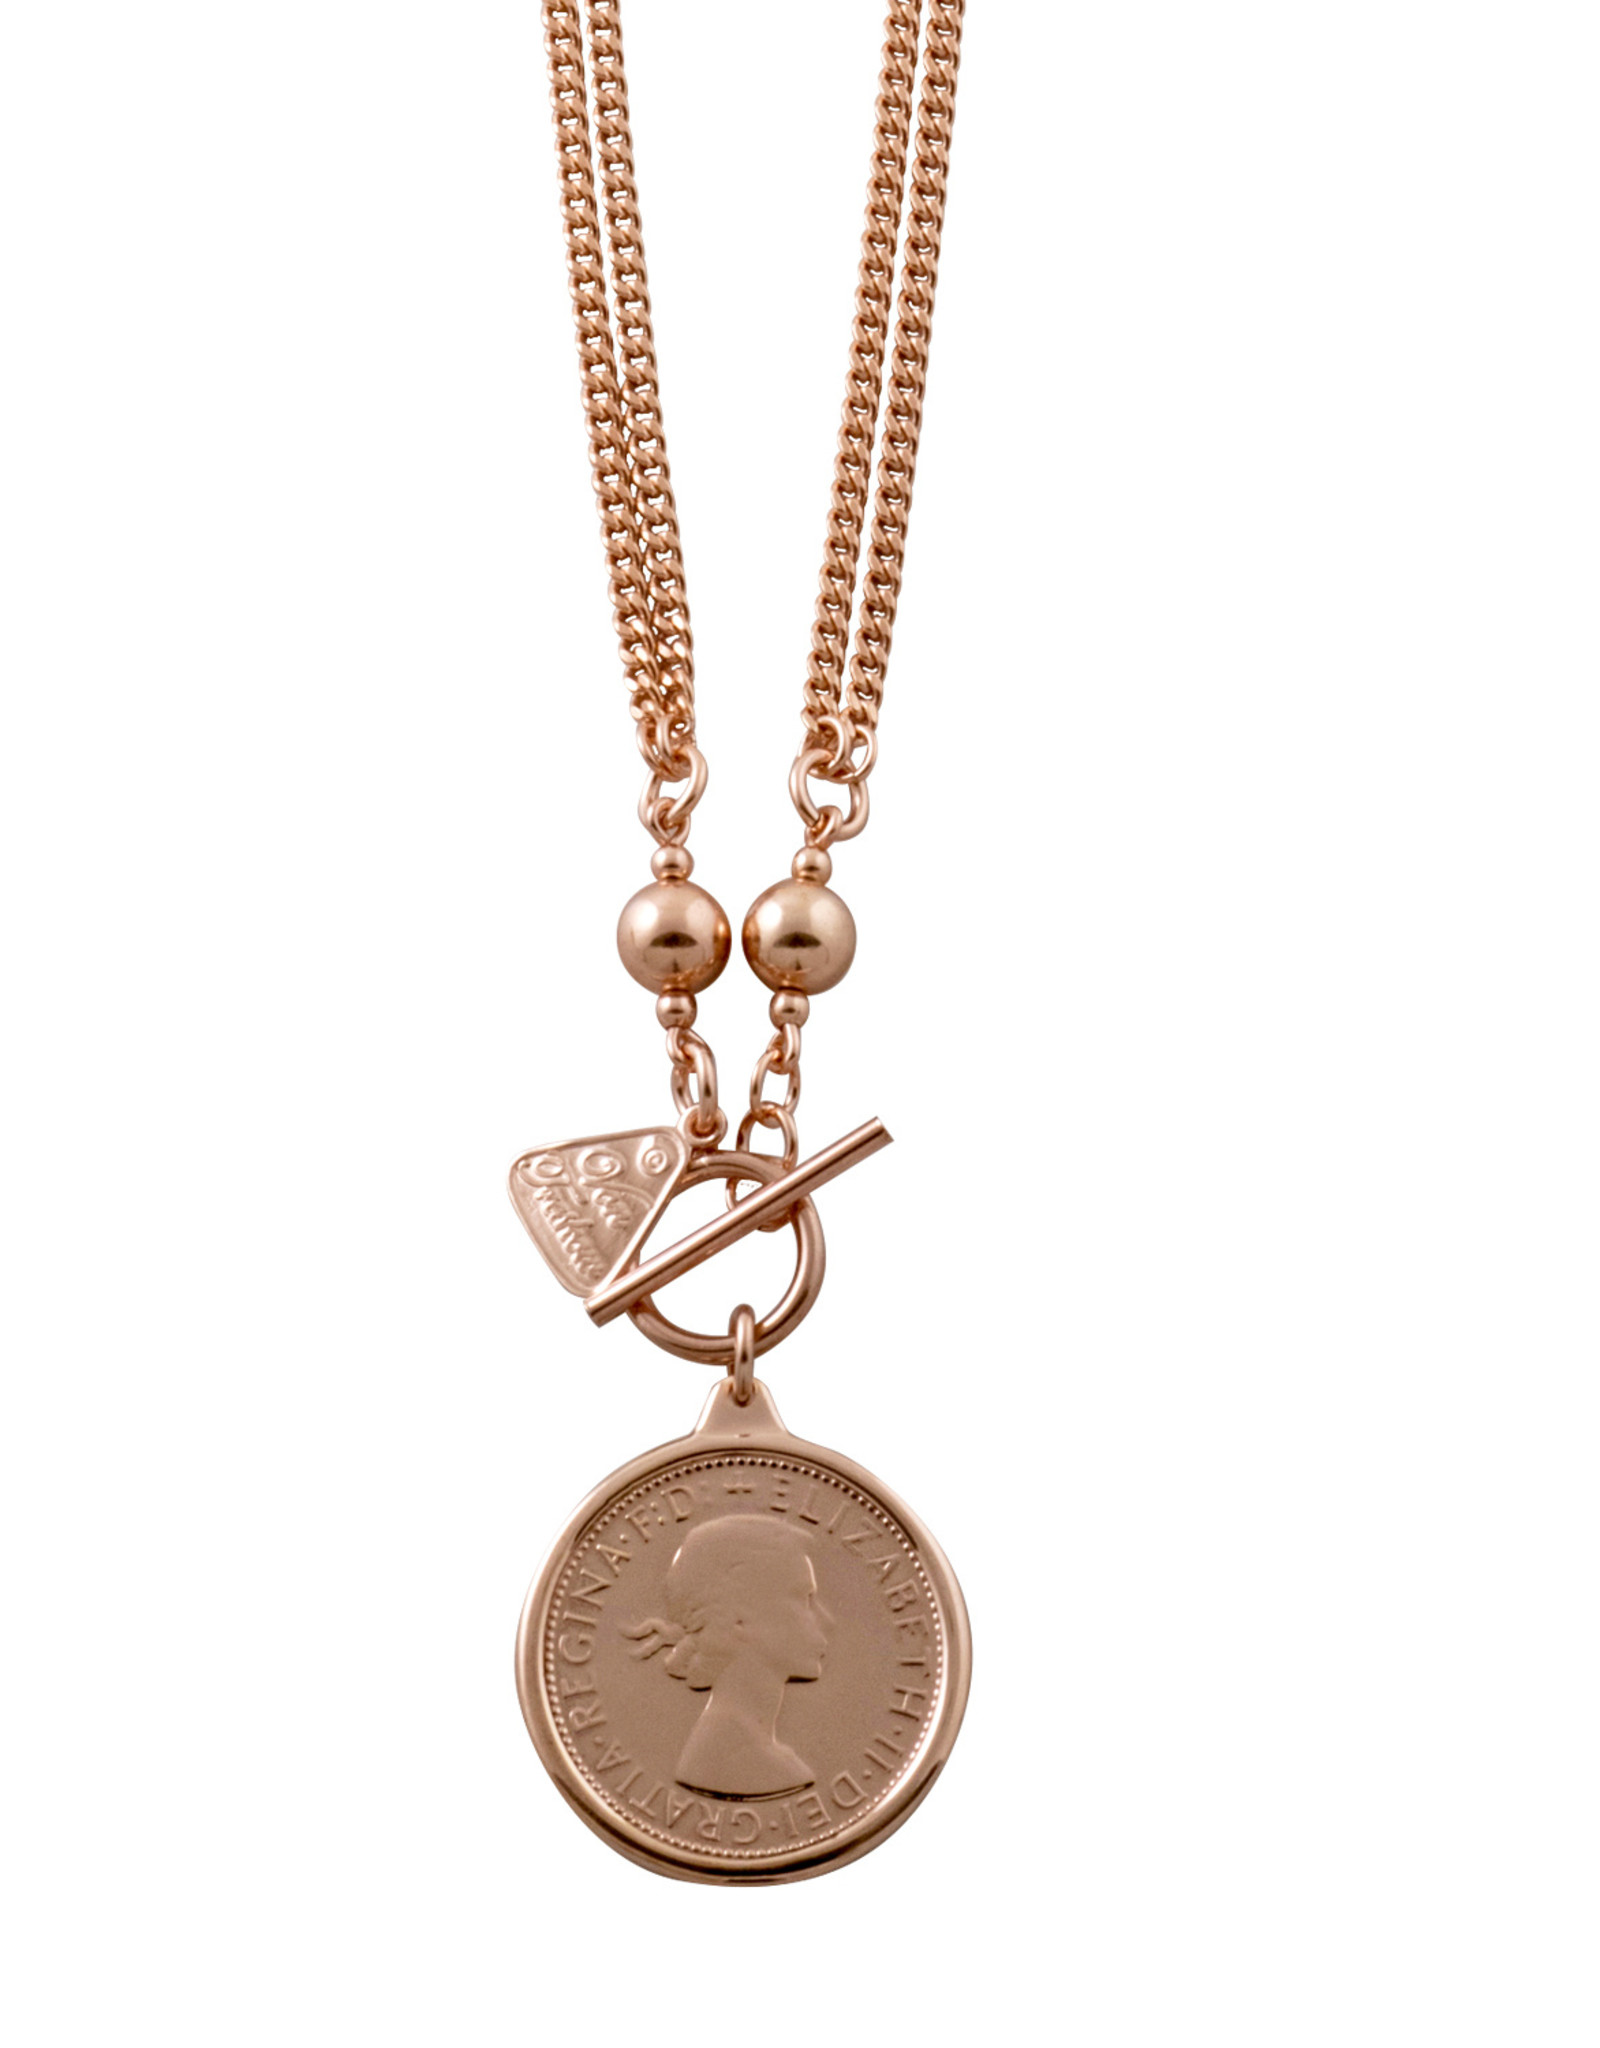 VON TRESKOW R/GOLD DOUBLE CURB NECKLACE WITH FLORIN